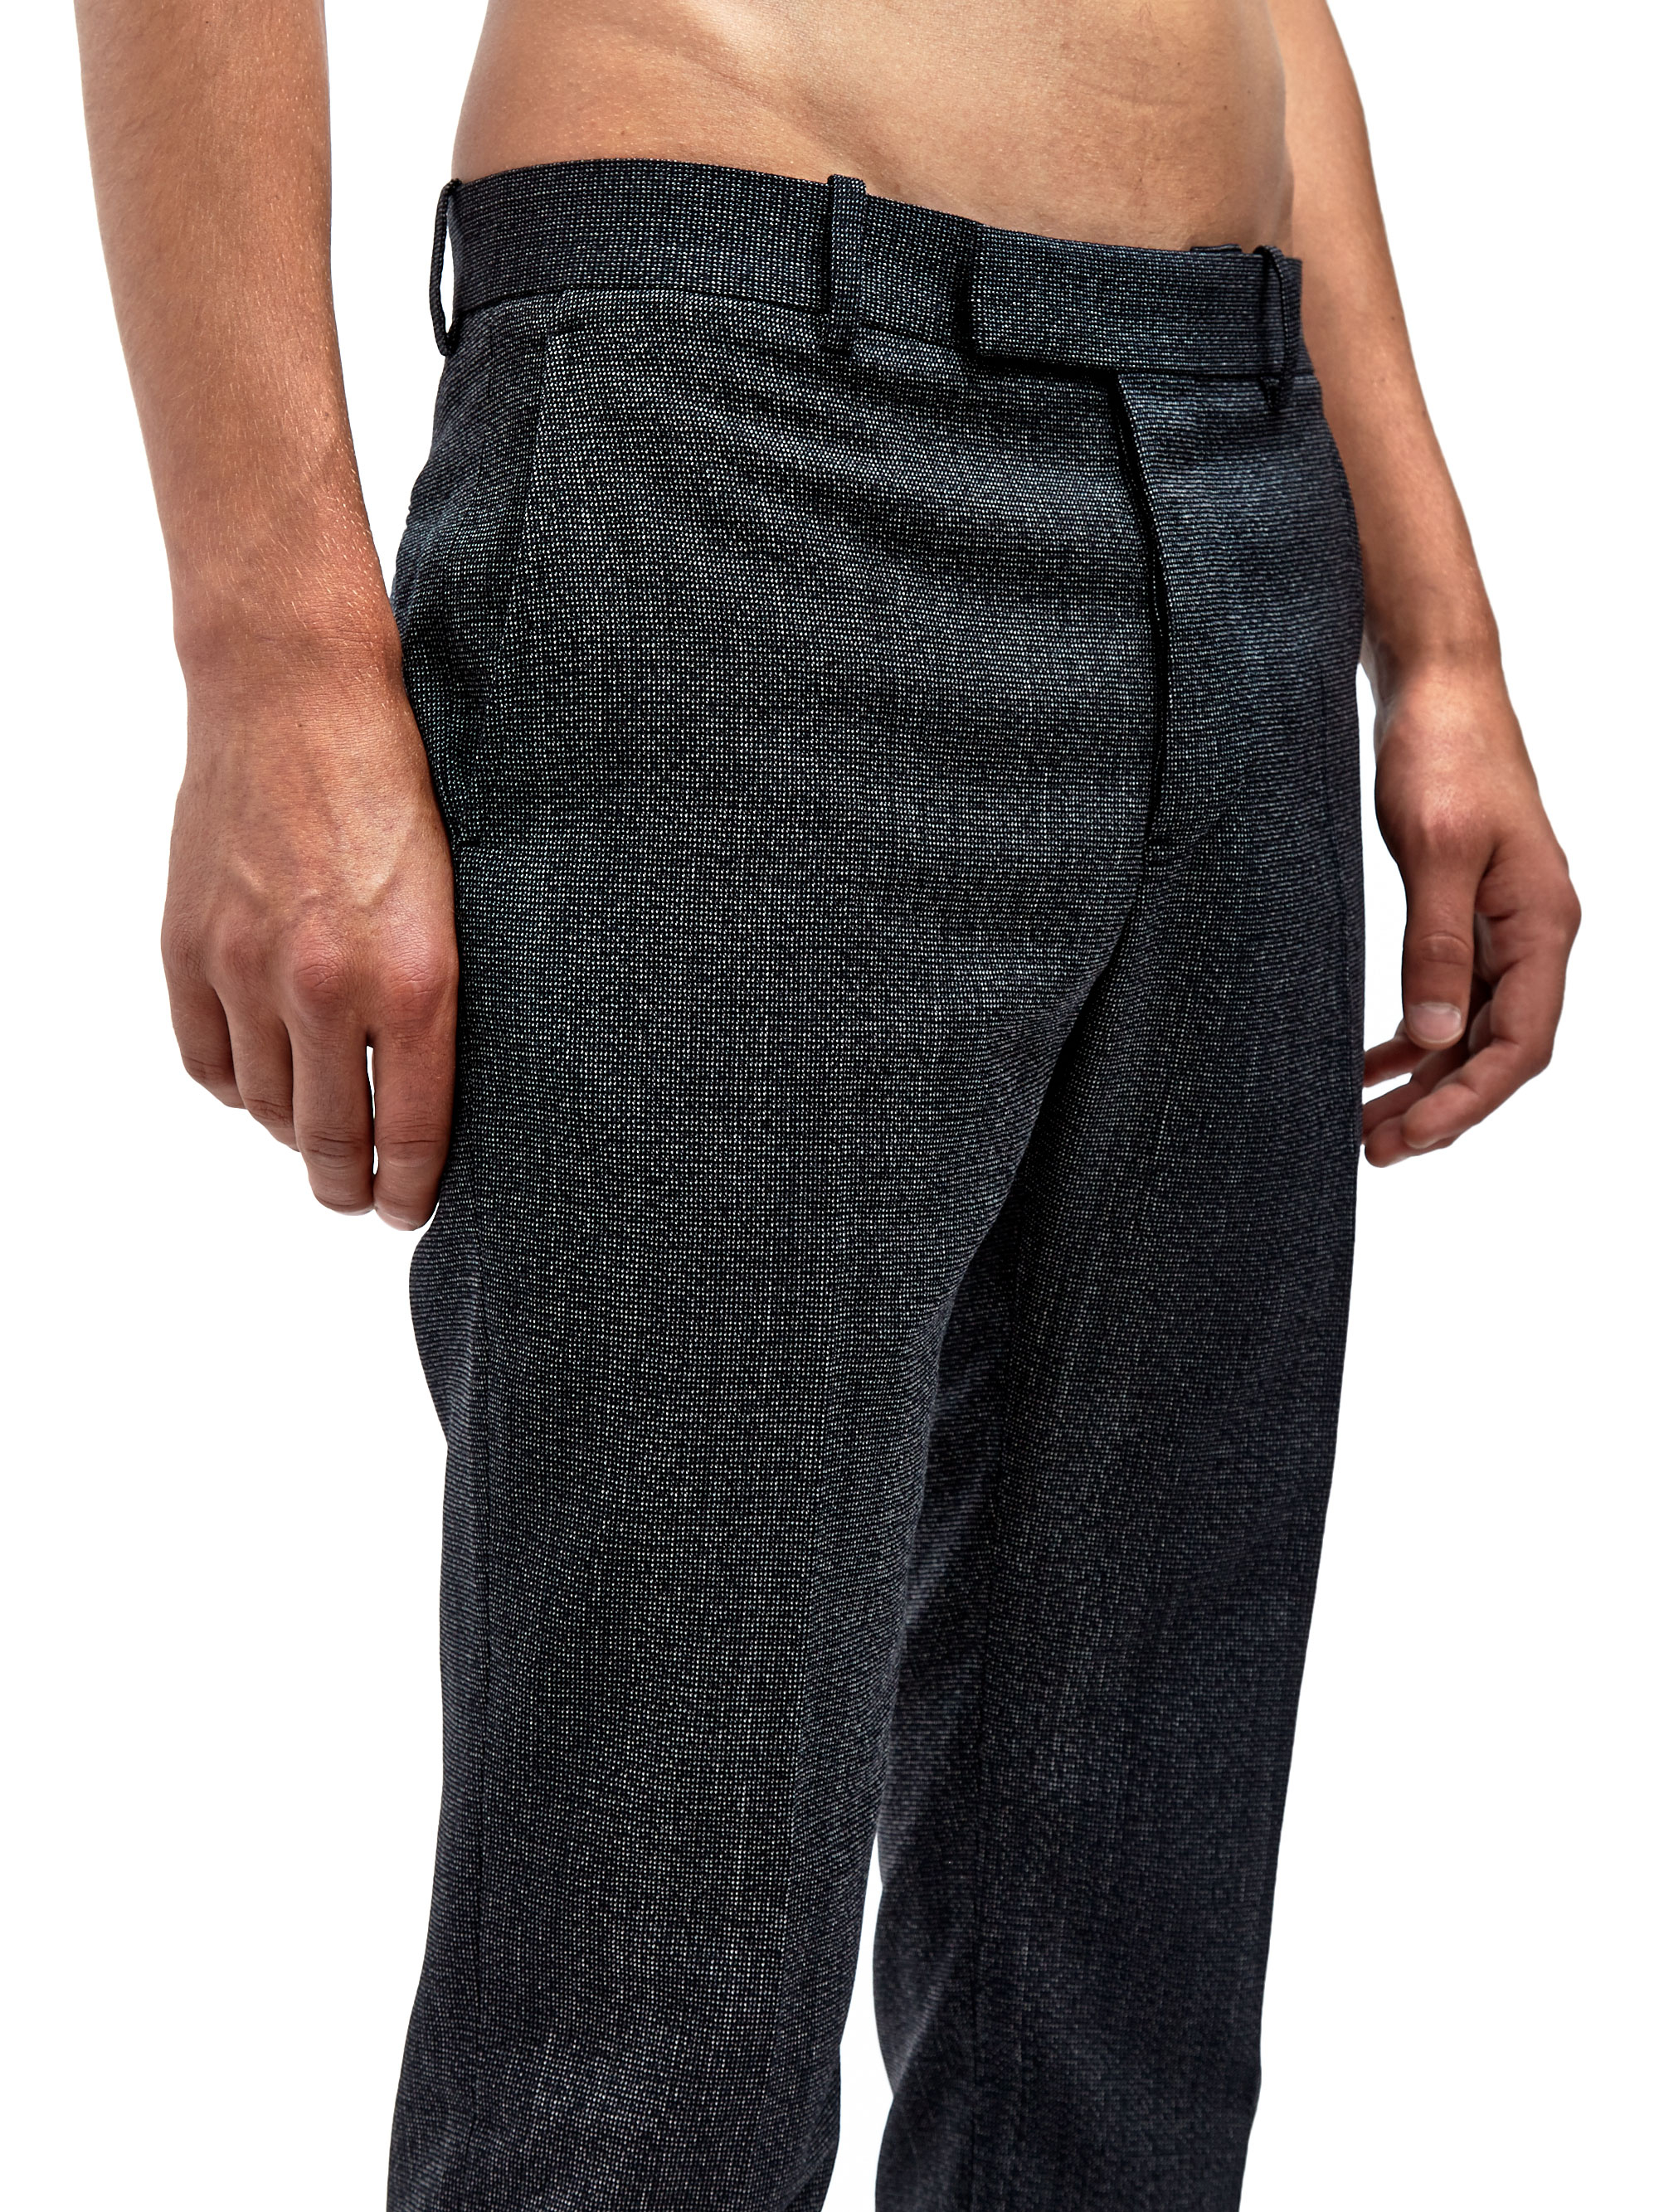 Pants Guaranteed to fit perfectly, Paul Fredrick's men's dress pants go from office to dinner effortlessly. Our casual pants are perfect daily wear for business casual or weekend wear.